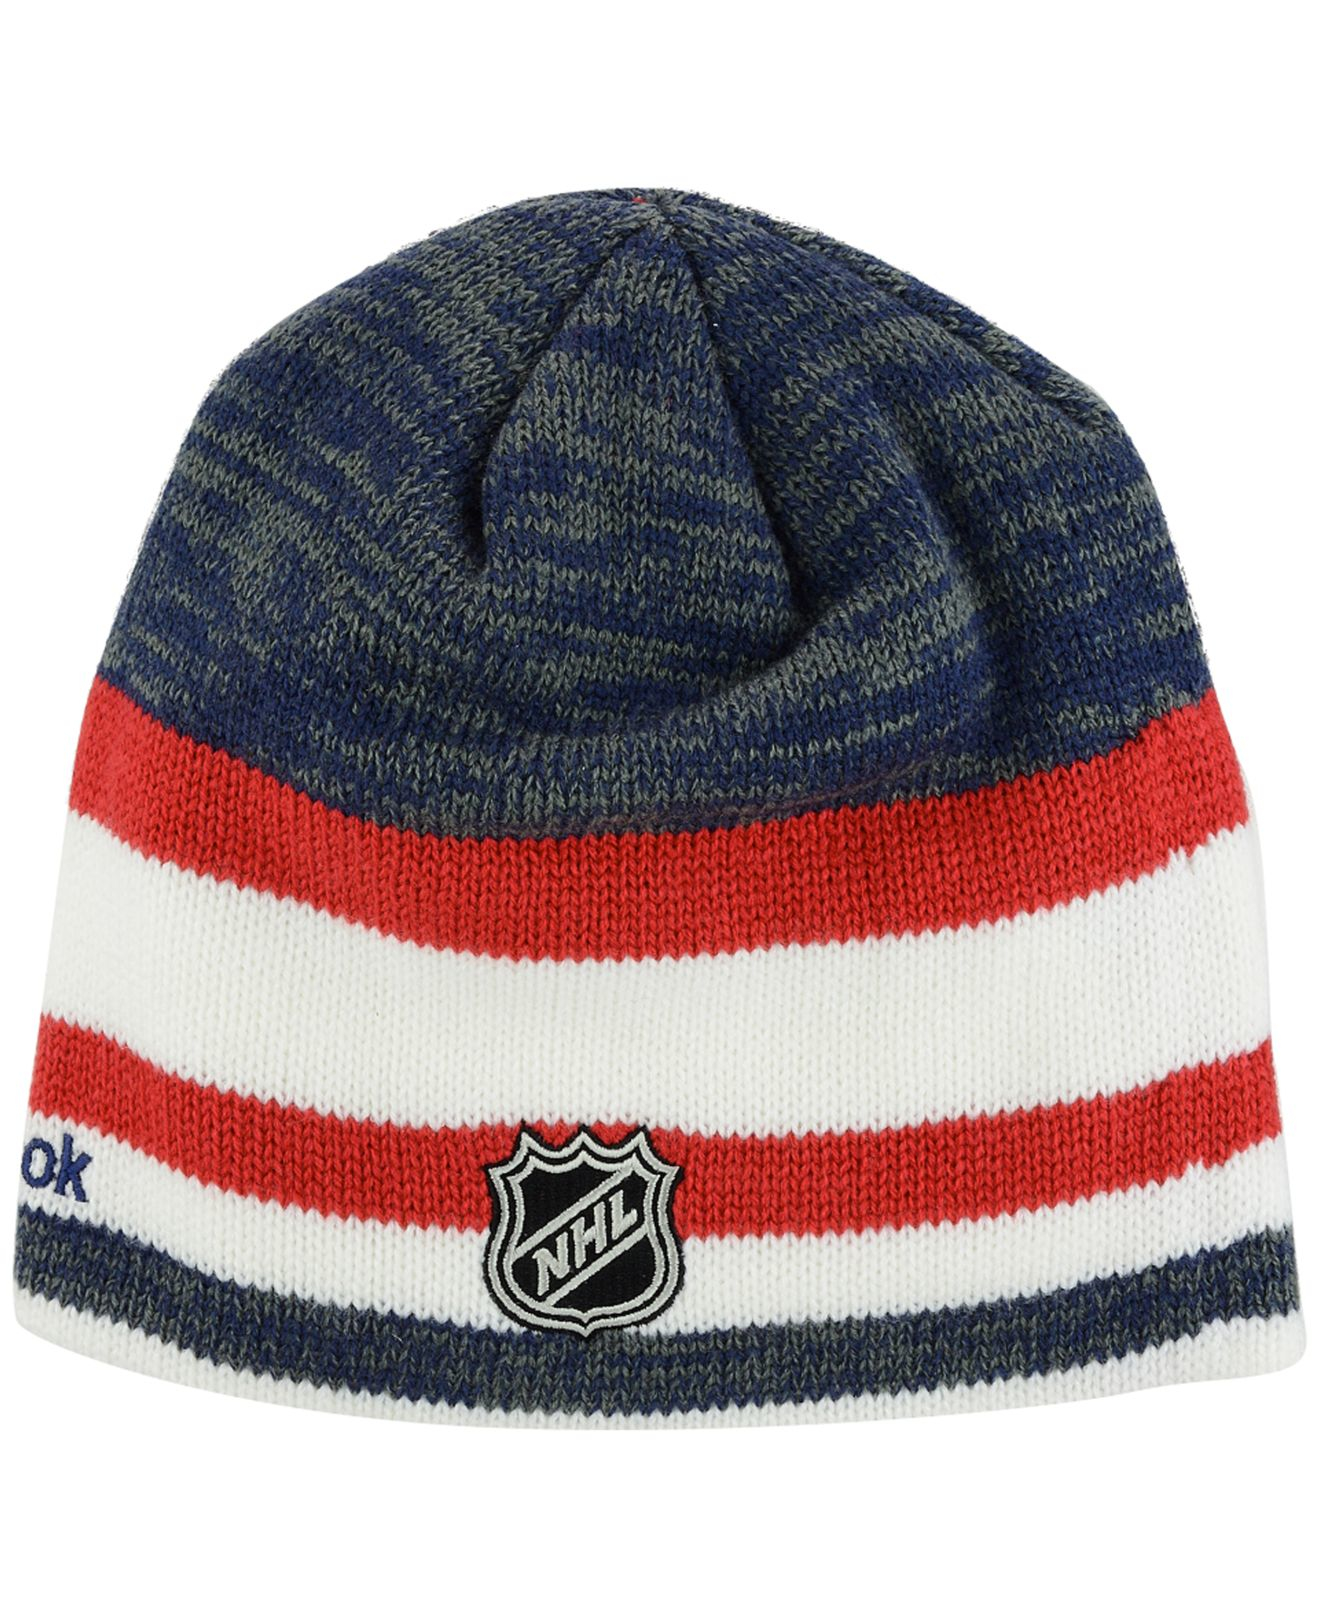 19922e66637ca9 Lyst - Reebok Montreal Canadiens Player Knit Hat in Blue for Men